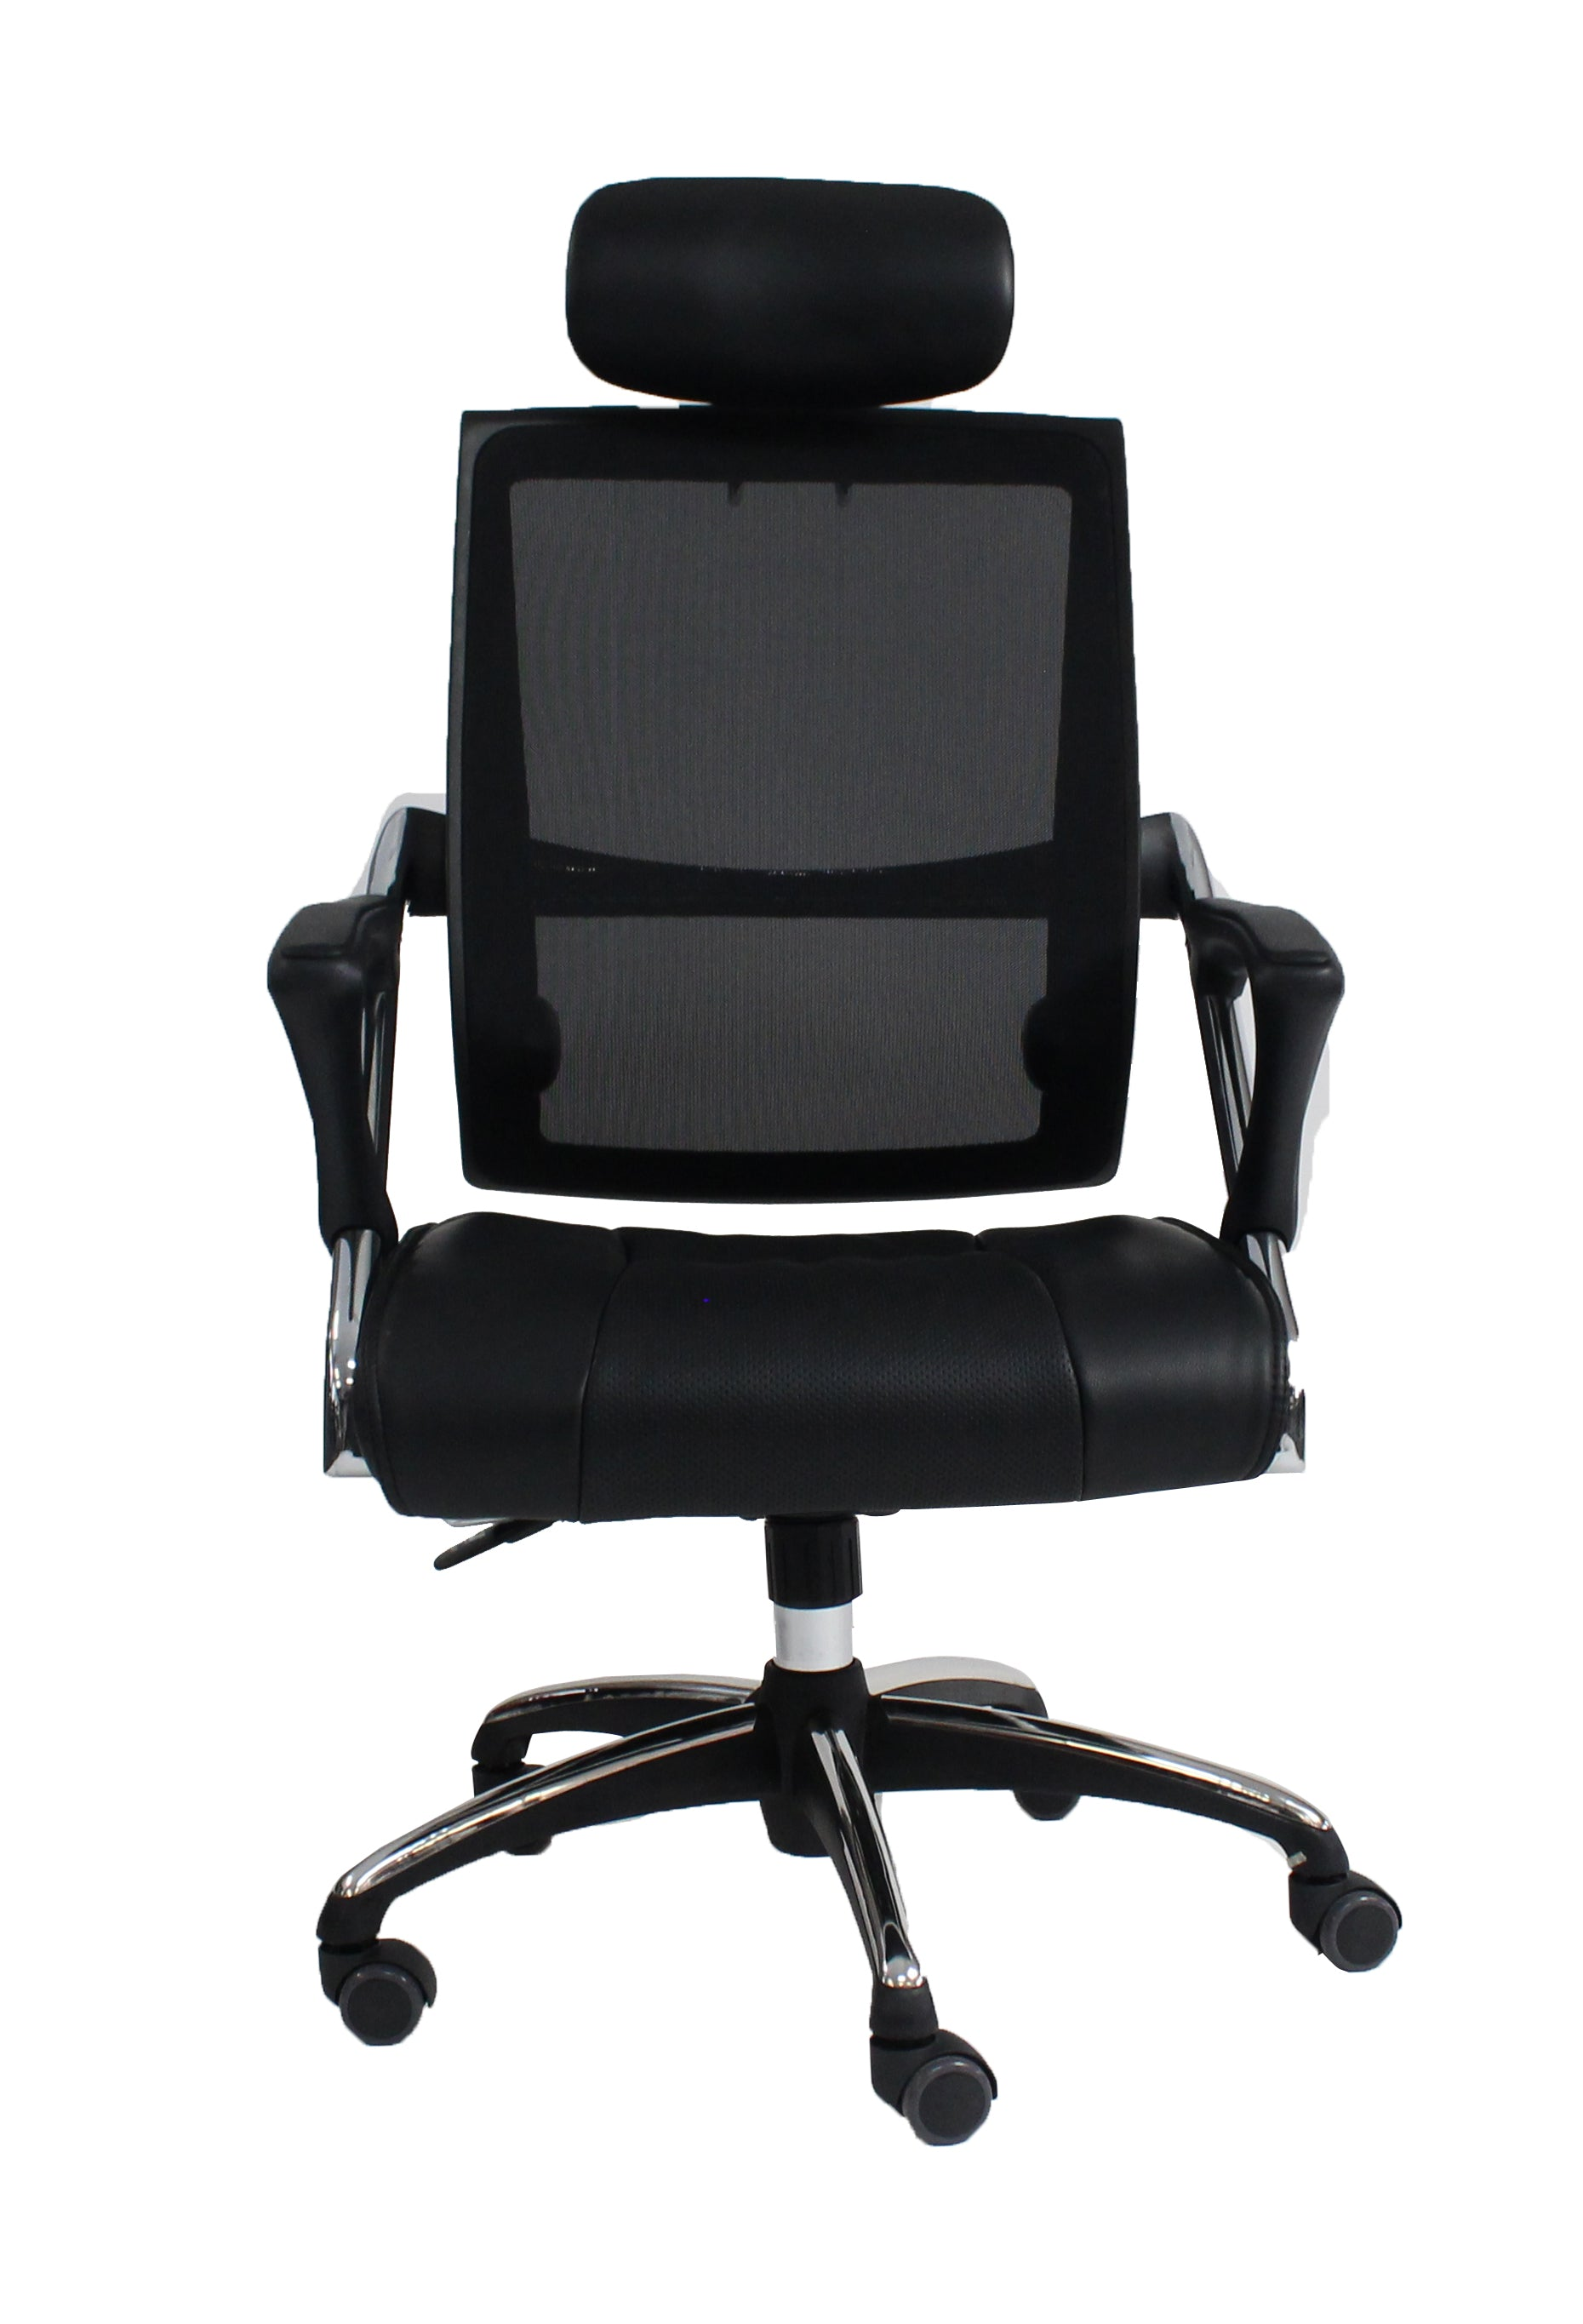 Executive Level Chair